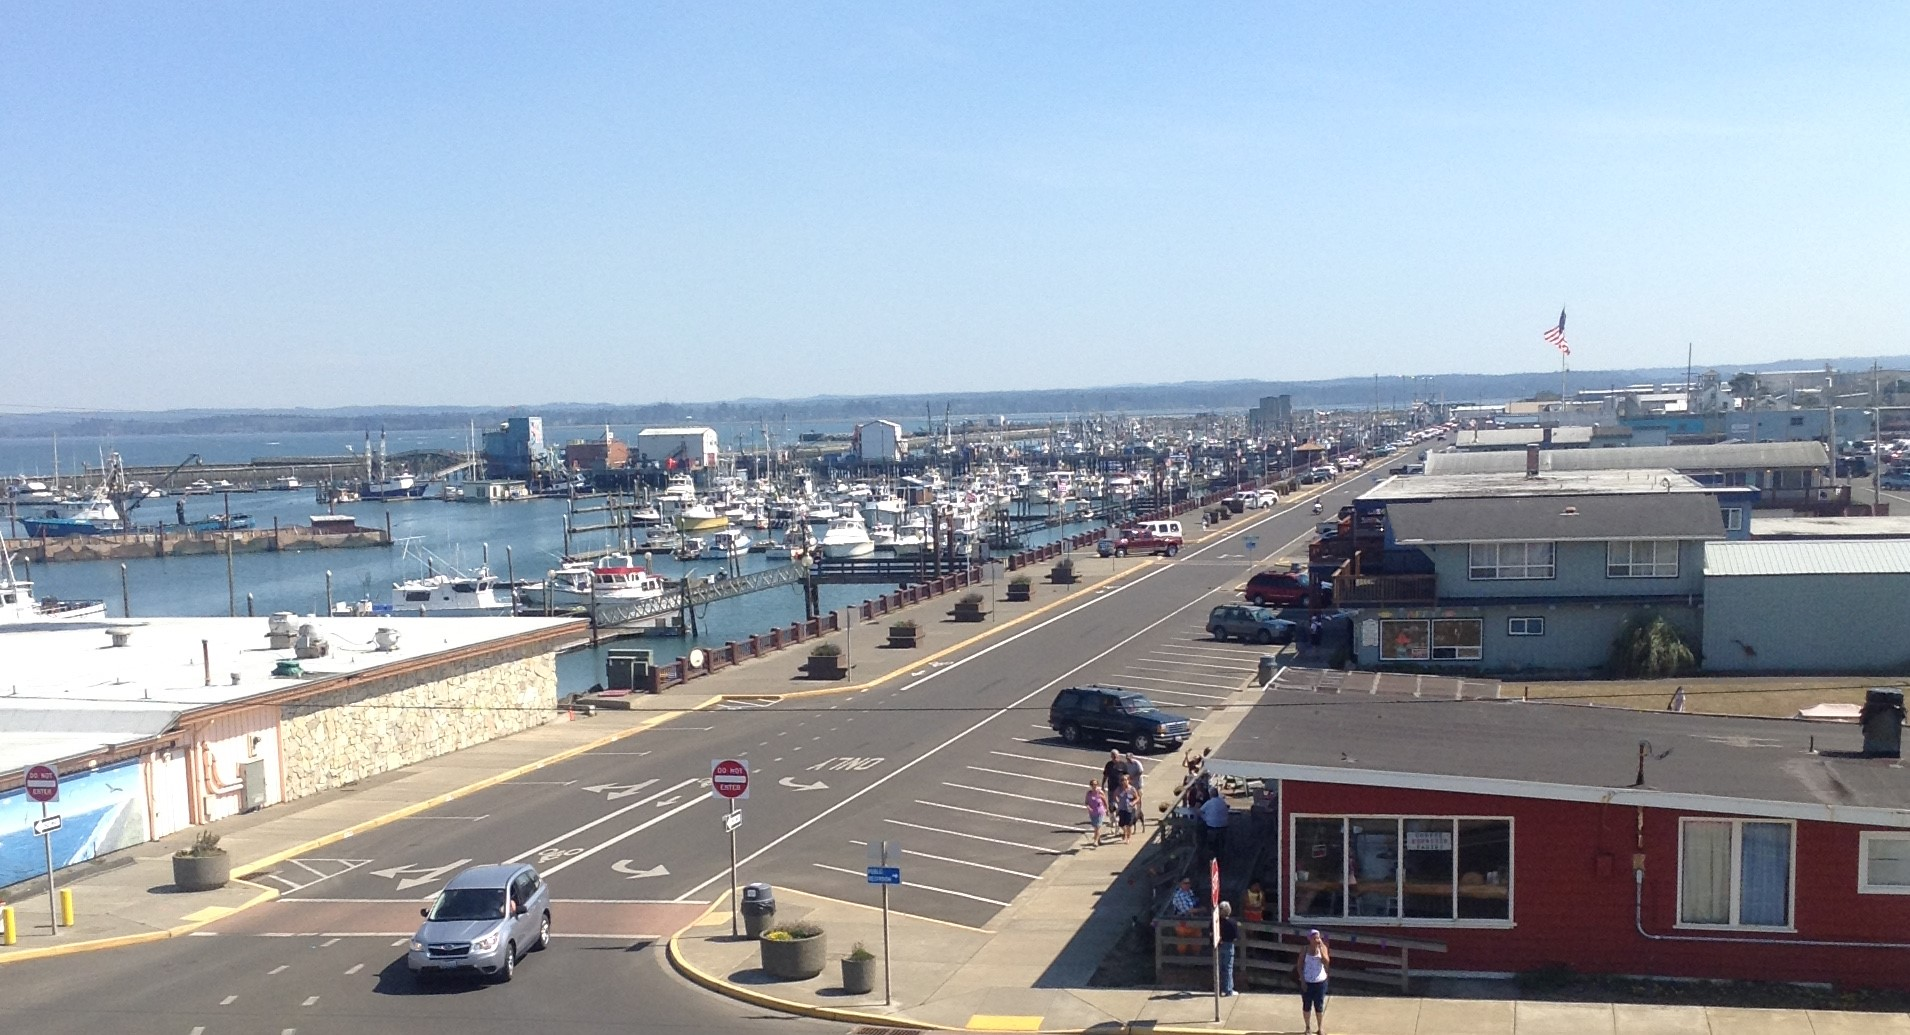 Westport, Washington Marina District